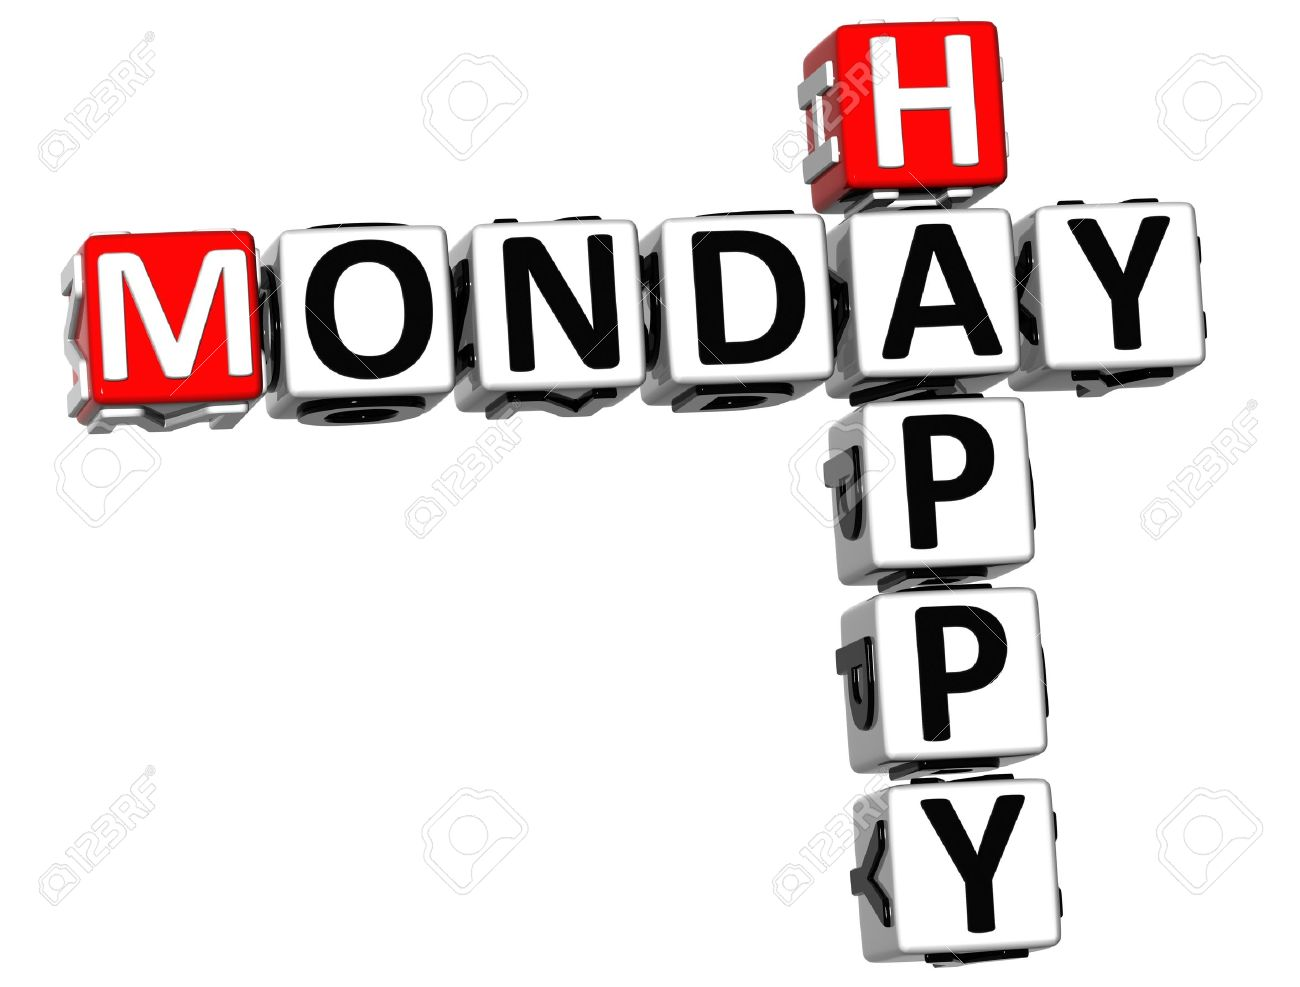 Happy Monday: 3D Happy Monday Crossword -happy monday: 3D Happy Monday Crossword on white background-5